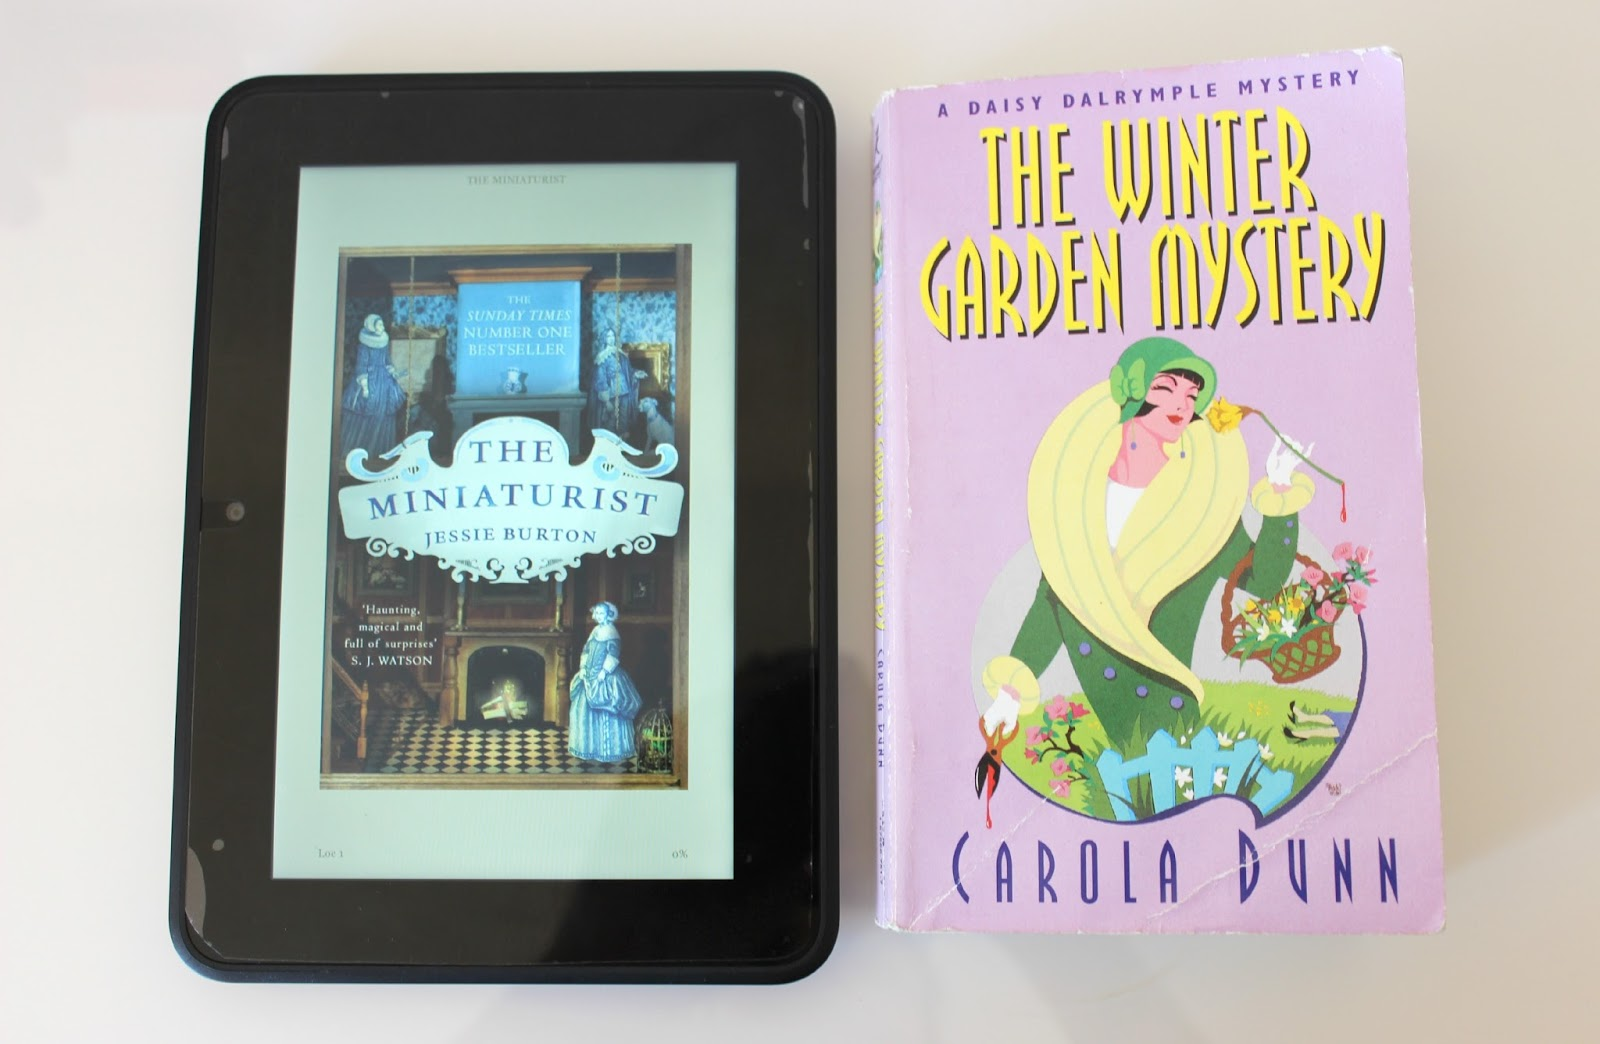 A picture of The Miniaturist by Jessie Burton and The Winter Garden Mystery by Carola Dunn